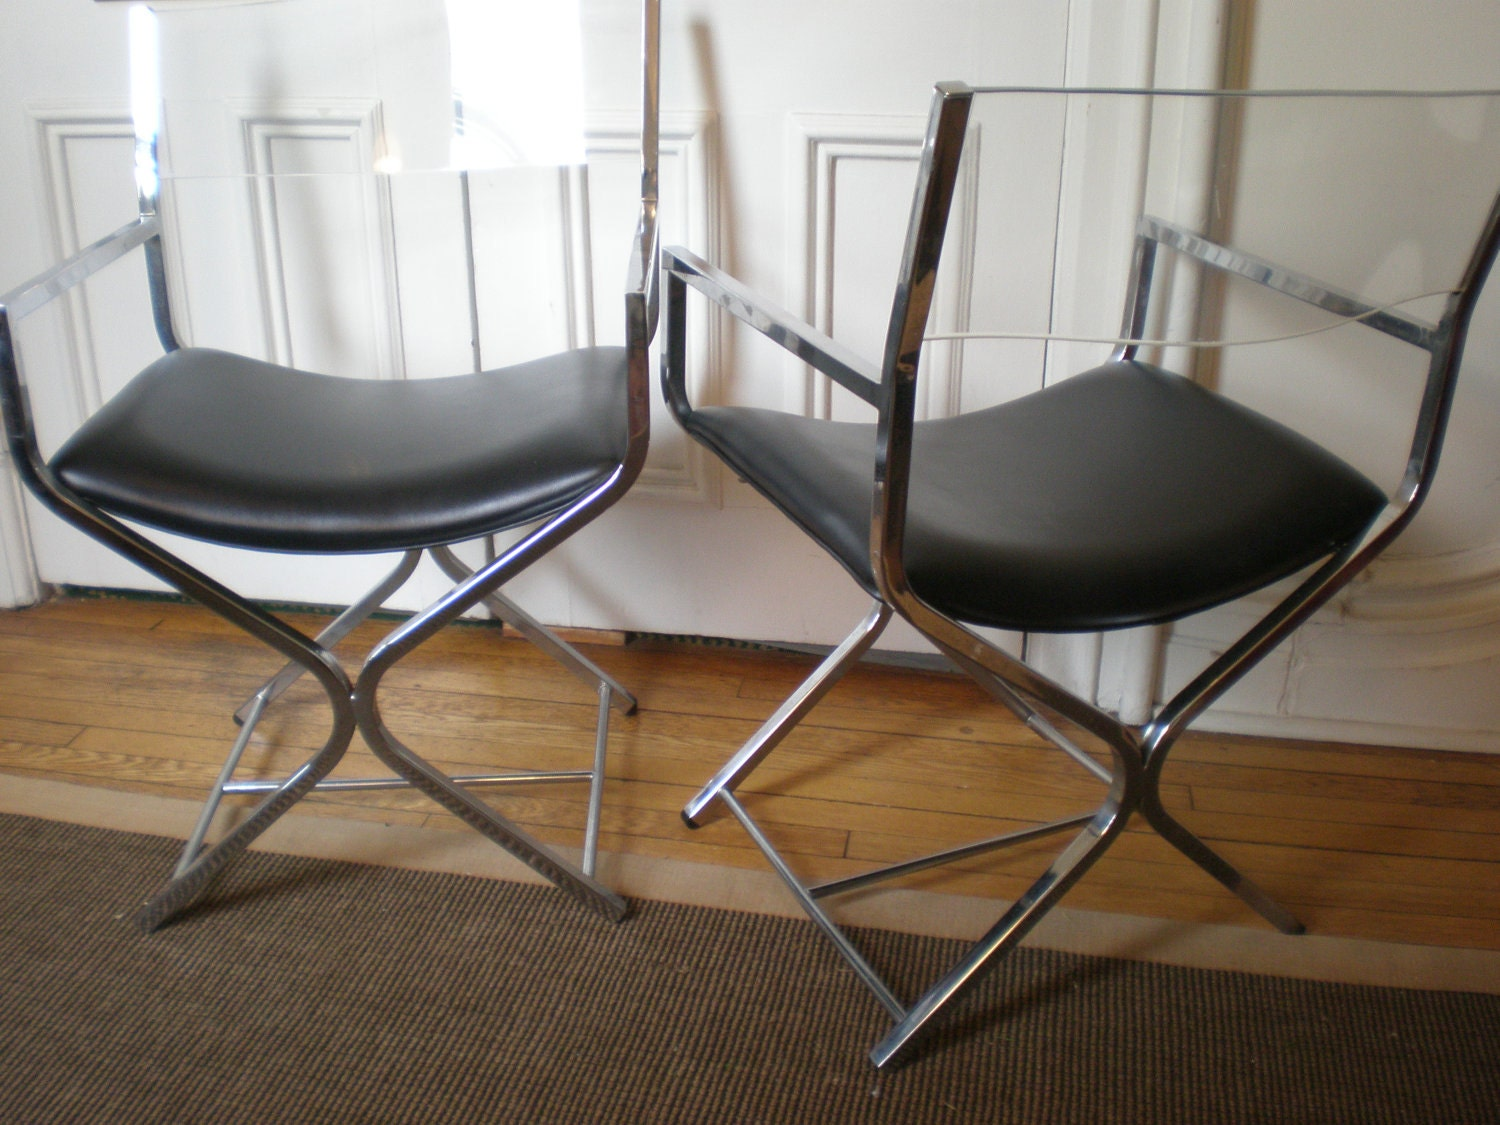 Pair Modern Chrome Leather Lucite Directors Chairs : ilfullxfull240546974 from www.etsy.com size 1500 x 1125 jpeg 332kB